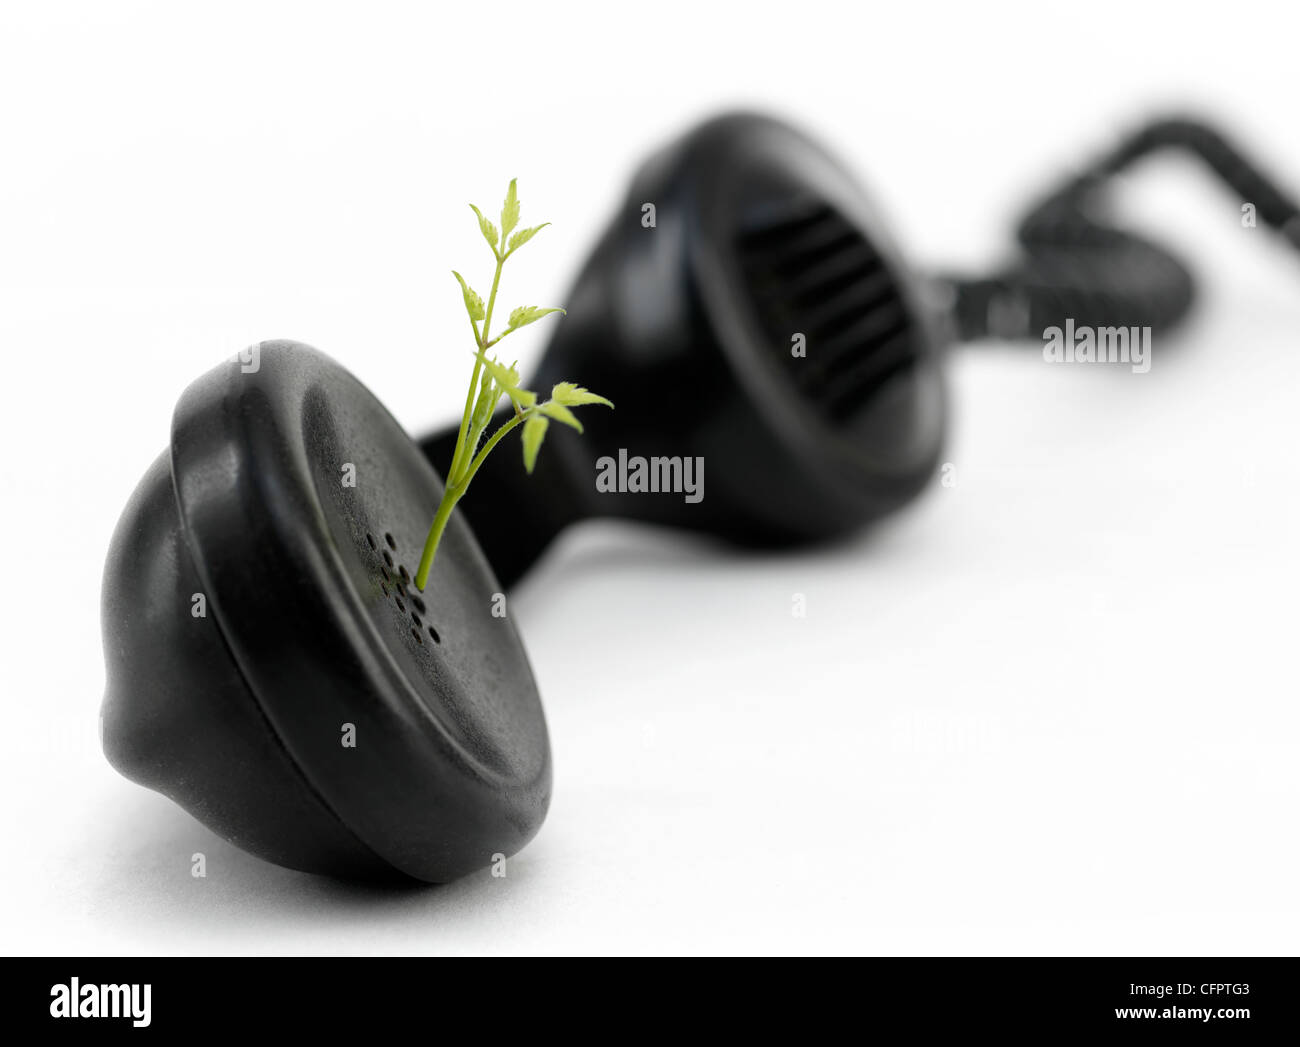 phone,plant,handset,globe,world,protect,recycling - Stock Image